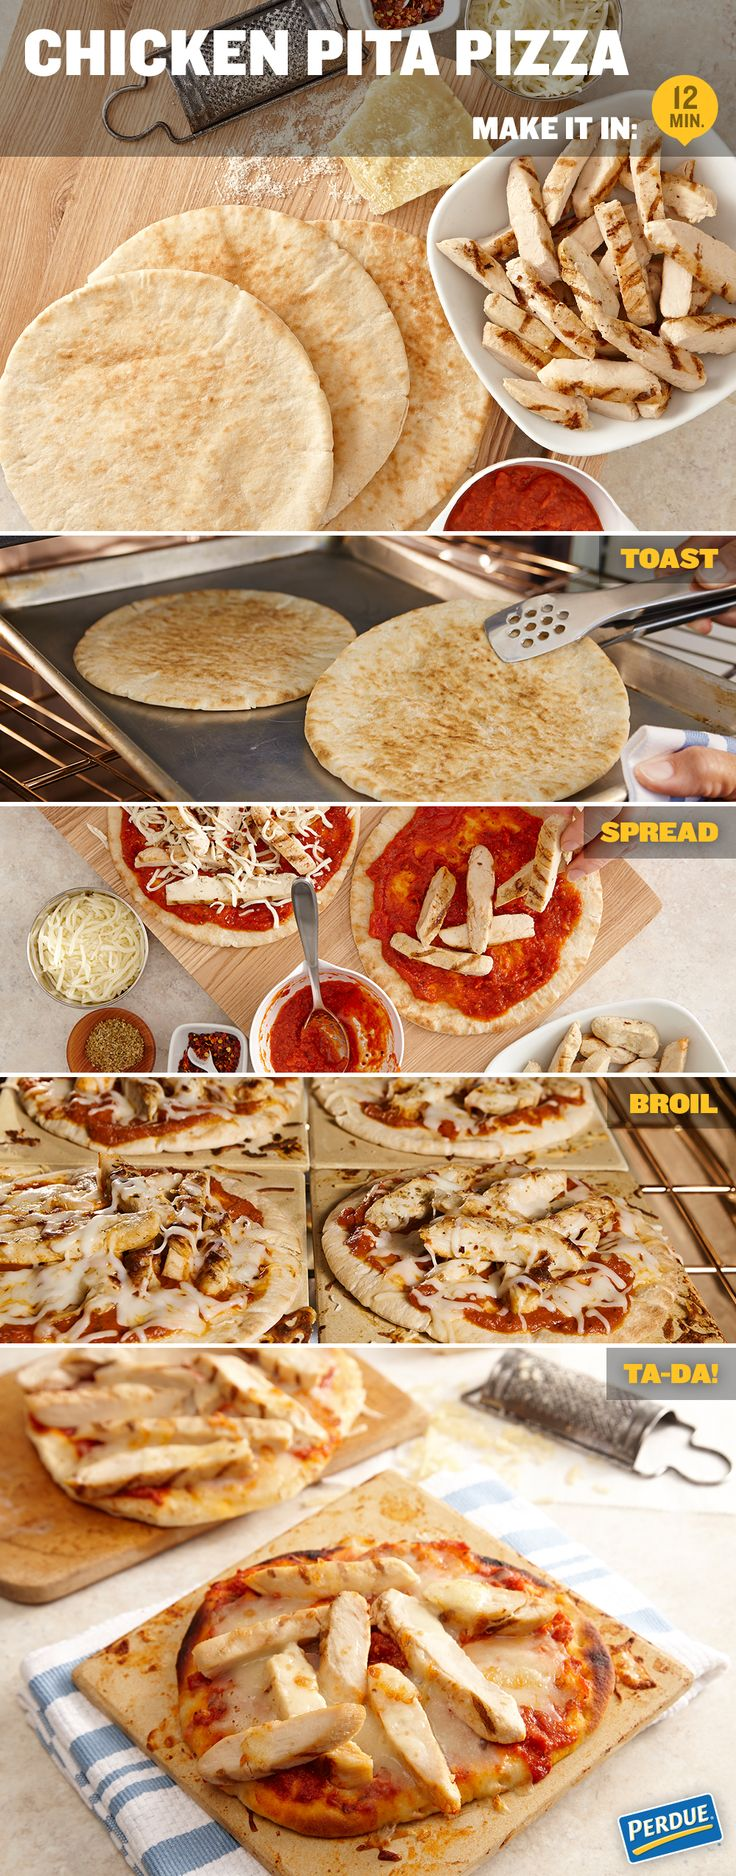 Chicken Pita Pizza comes together fast and can be on the table in just 12 minutes!